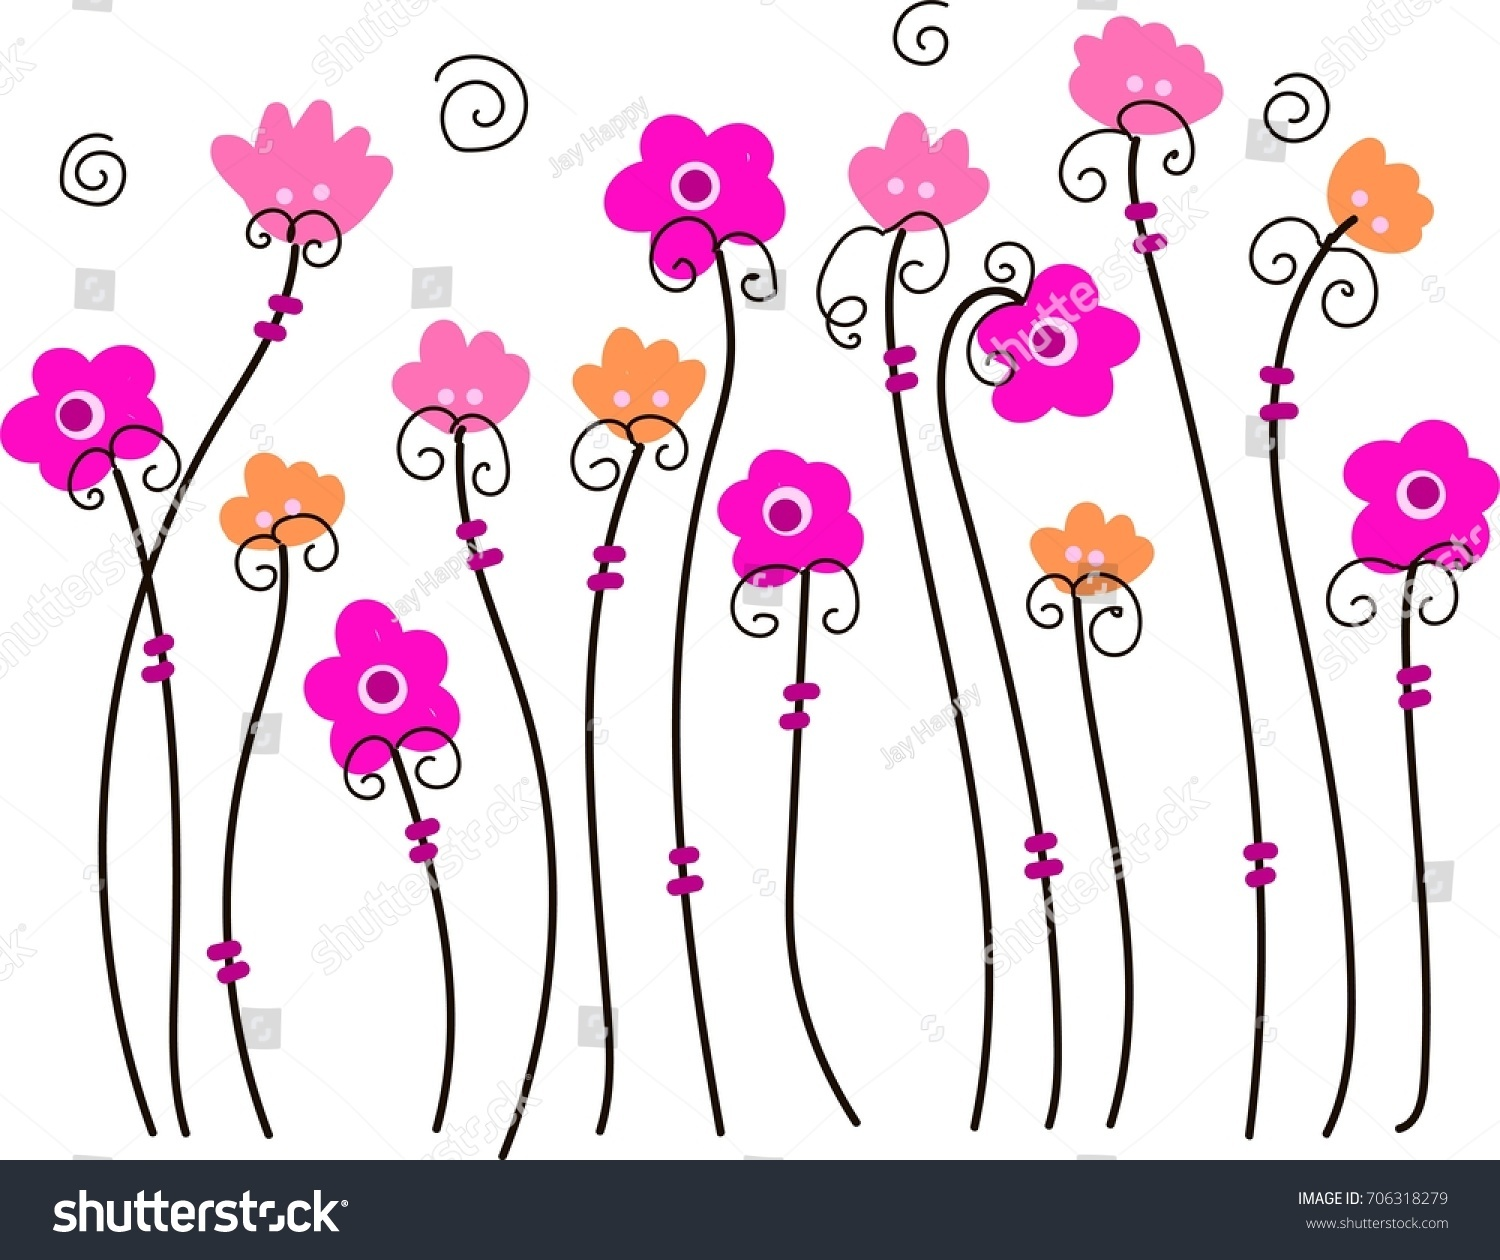 Pink Flower Vine Cute Floral Wallpaper Stock Vector Royalty Free